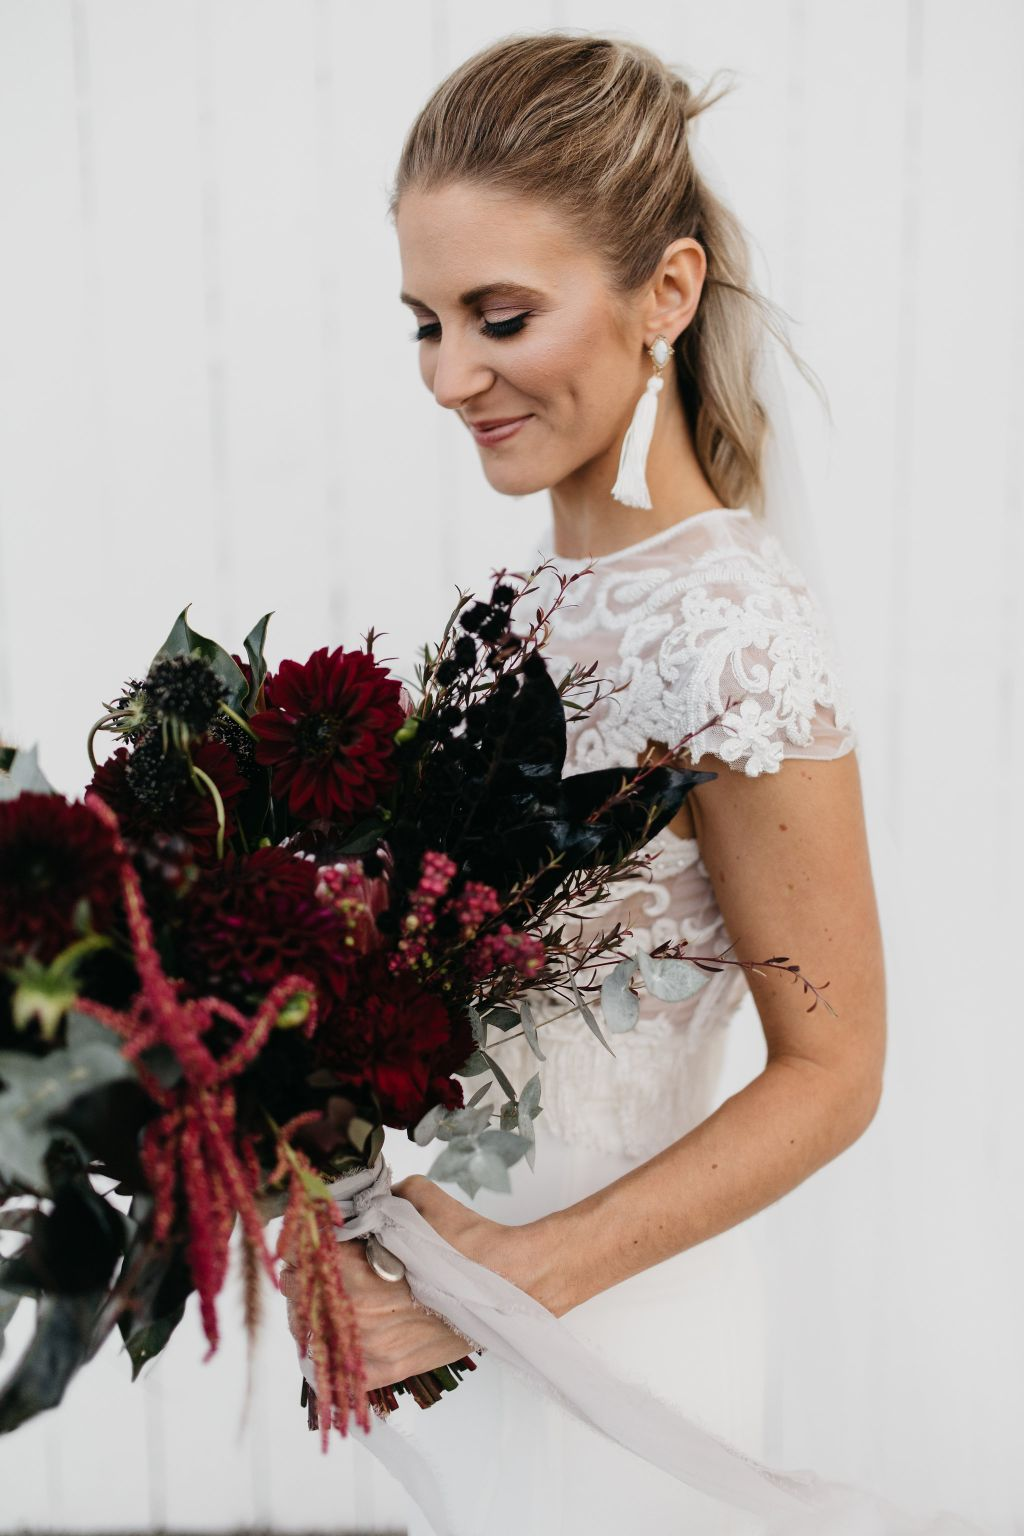 SB CREATIVE CO PHOTOGRAPHY WEDDING FLOWERS FLORAL DESIGN